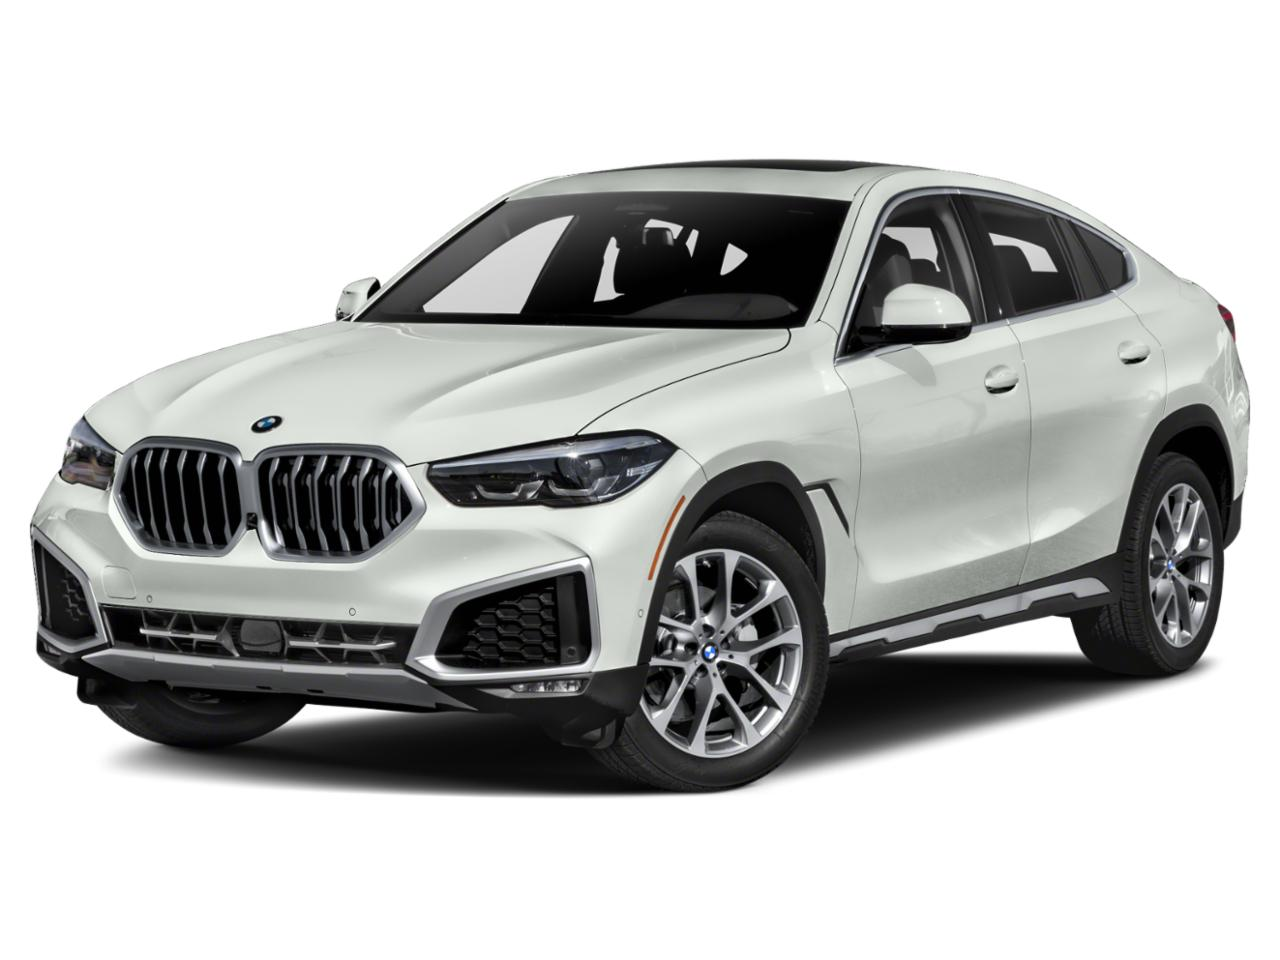 New 2021 Bmw X6 M50i Mineral White Metallic With Photos Sports Activity Coupe 5uxcy8c03m9e51619